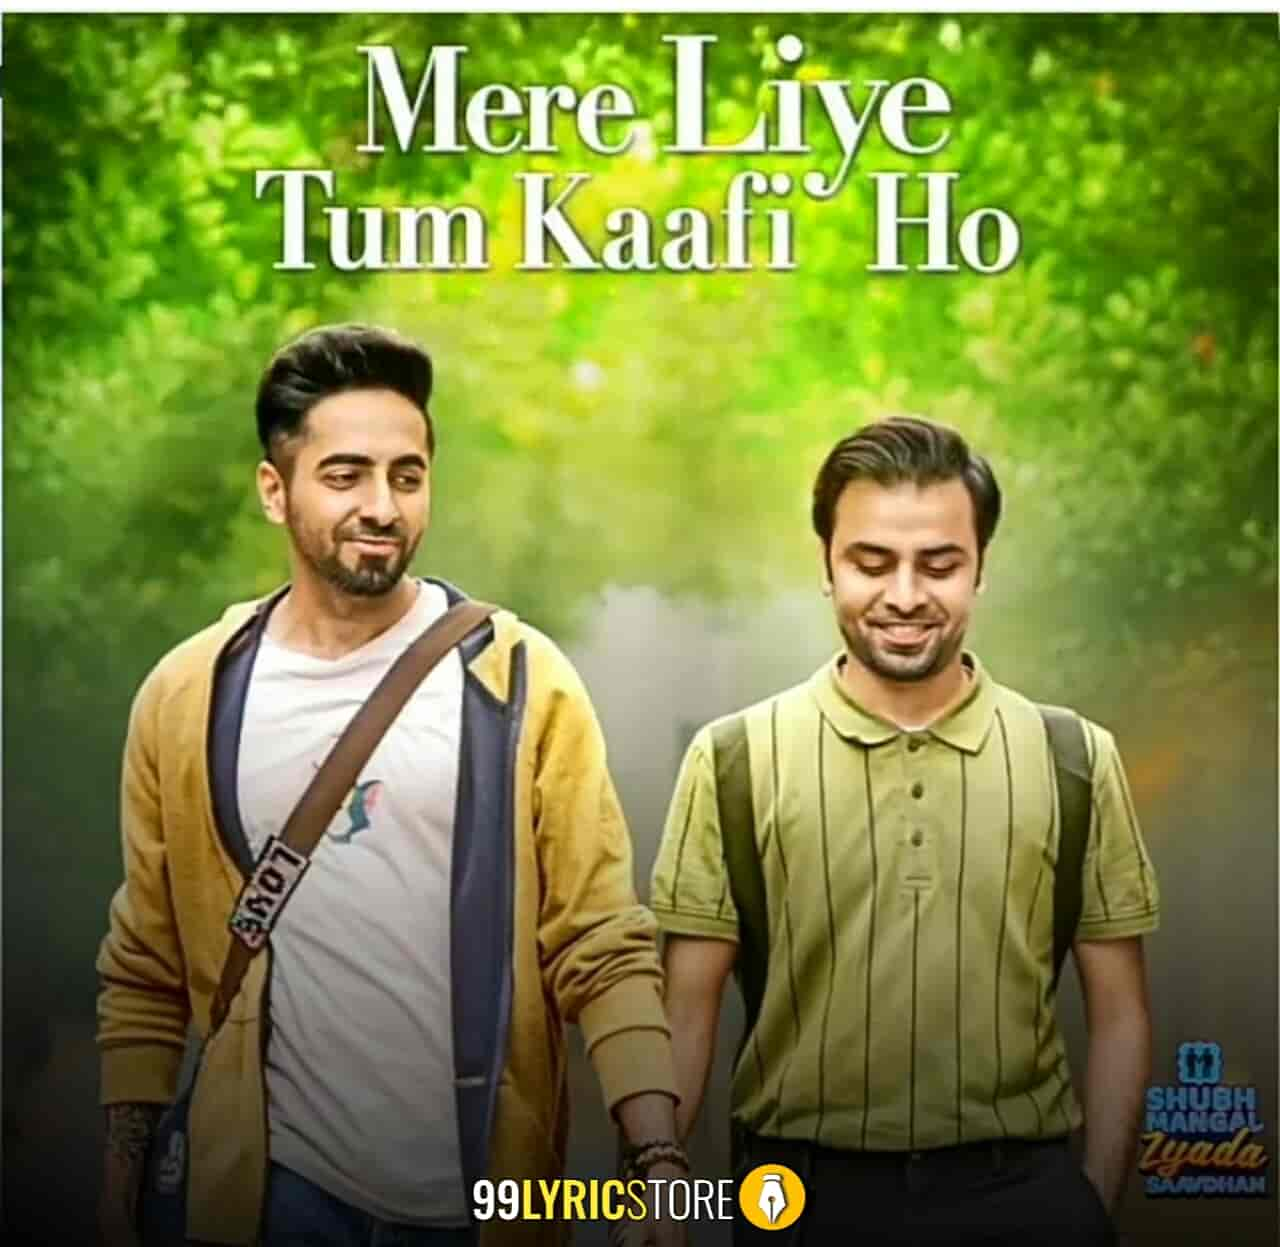 Tum Mere Liye Tum Kaafi Ho Lyrics Images From Movie Shubh Mangal Zyada Saavdhan